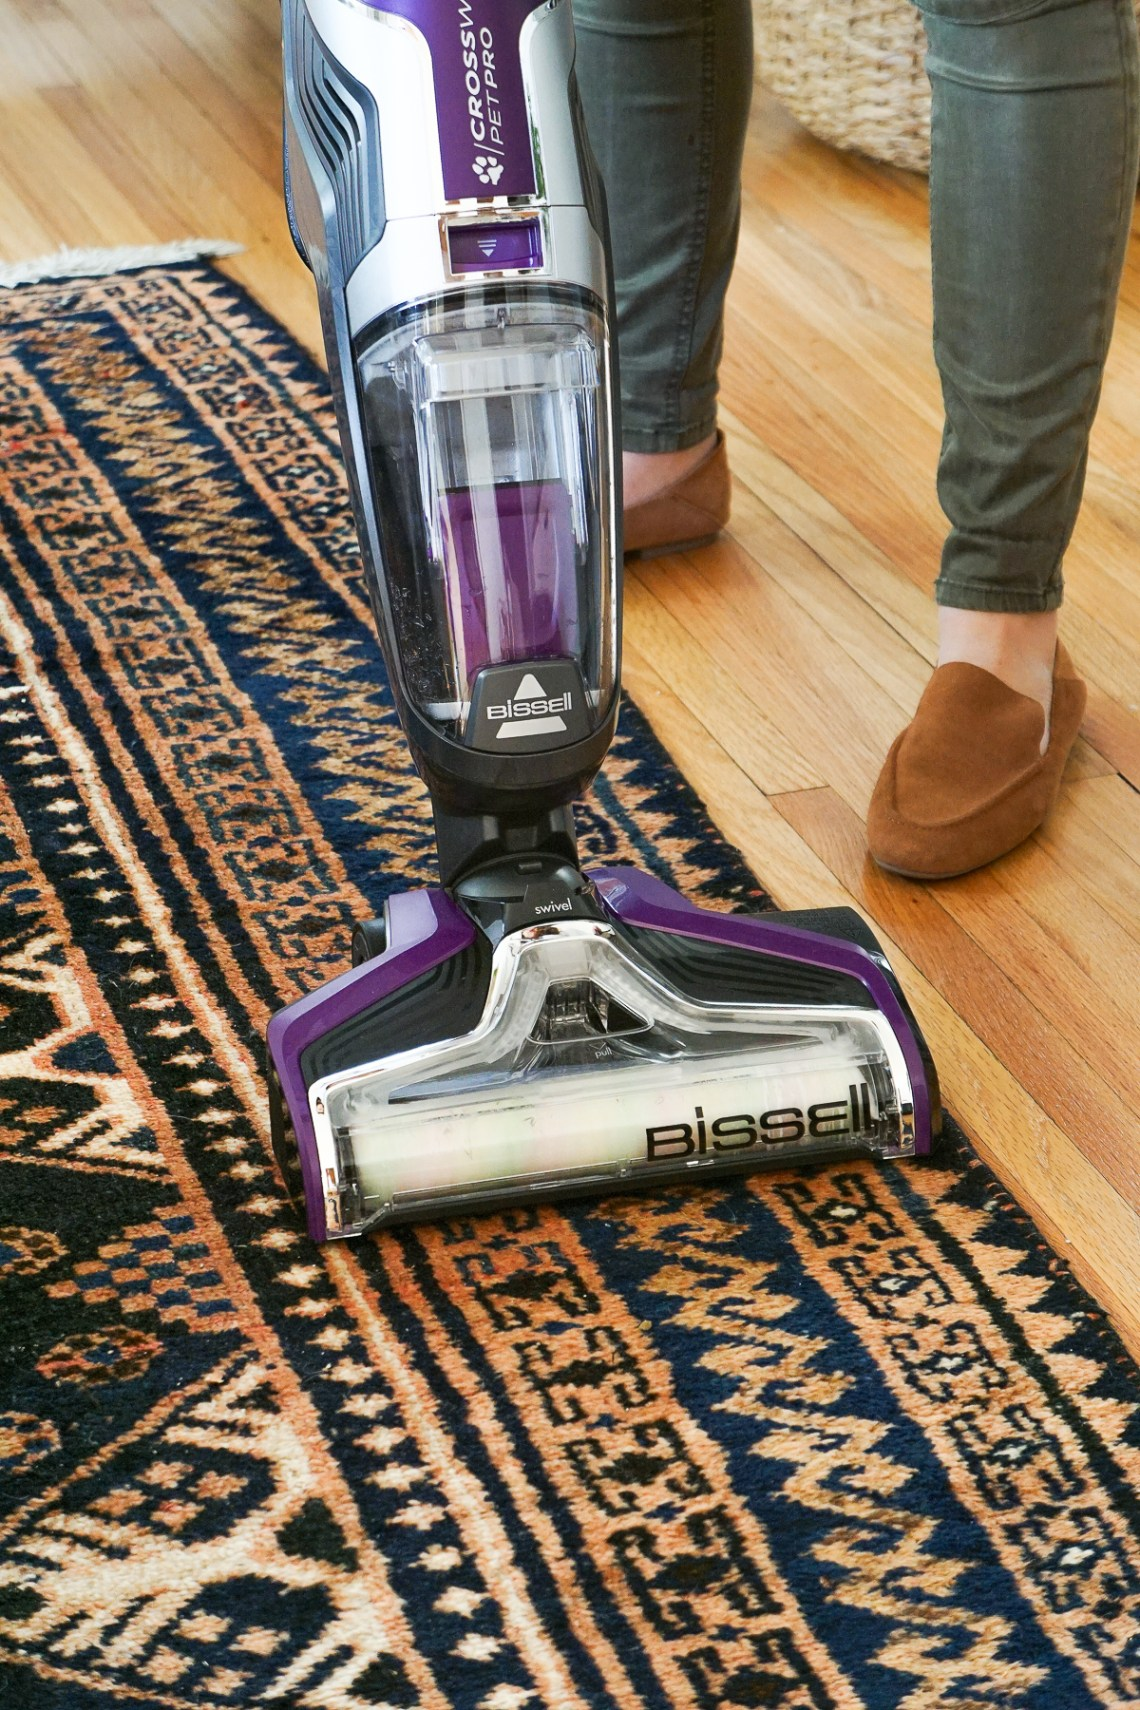 Cleaning the house isn't exactly my most favorite thing to do, so I'm sharing how I've streamlined our daily cleaning routine.